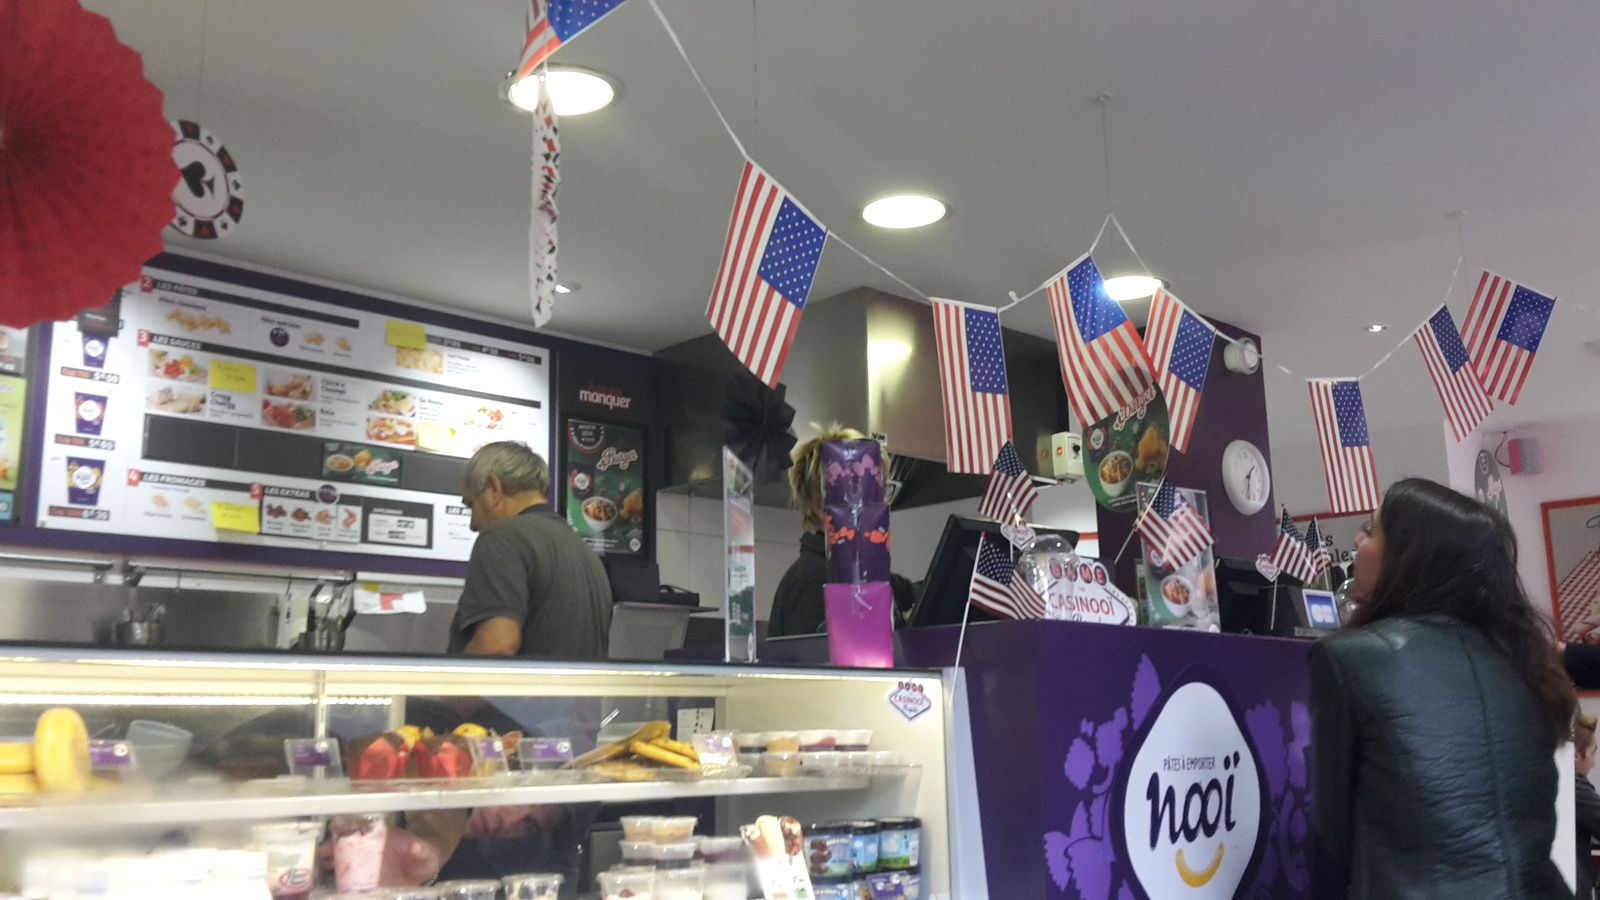 Décidemment.../ What's with American flags in French fast food places???